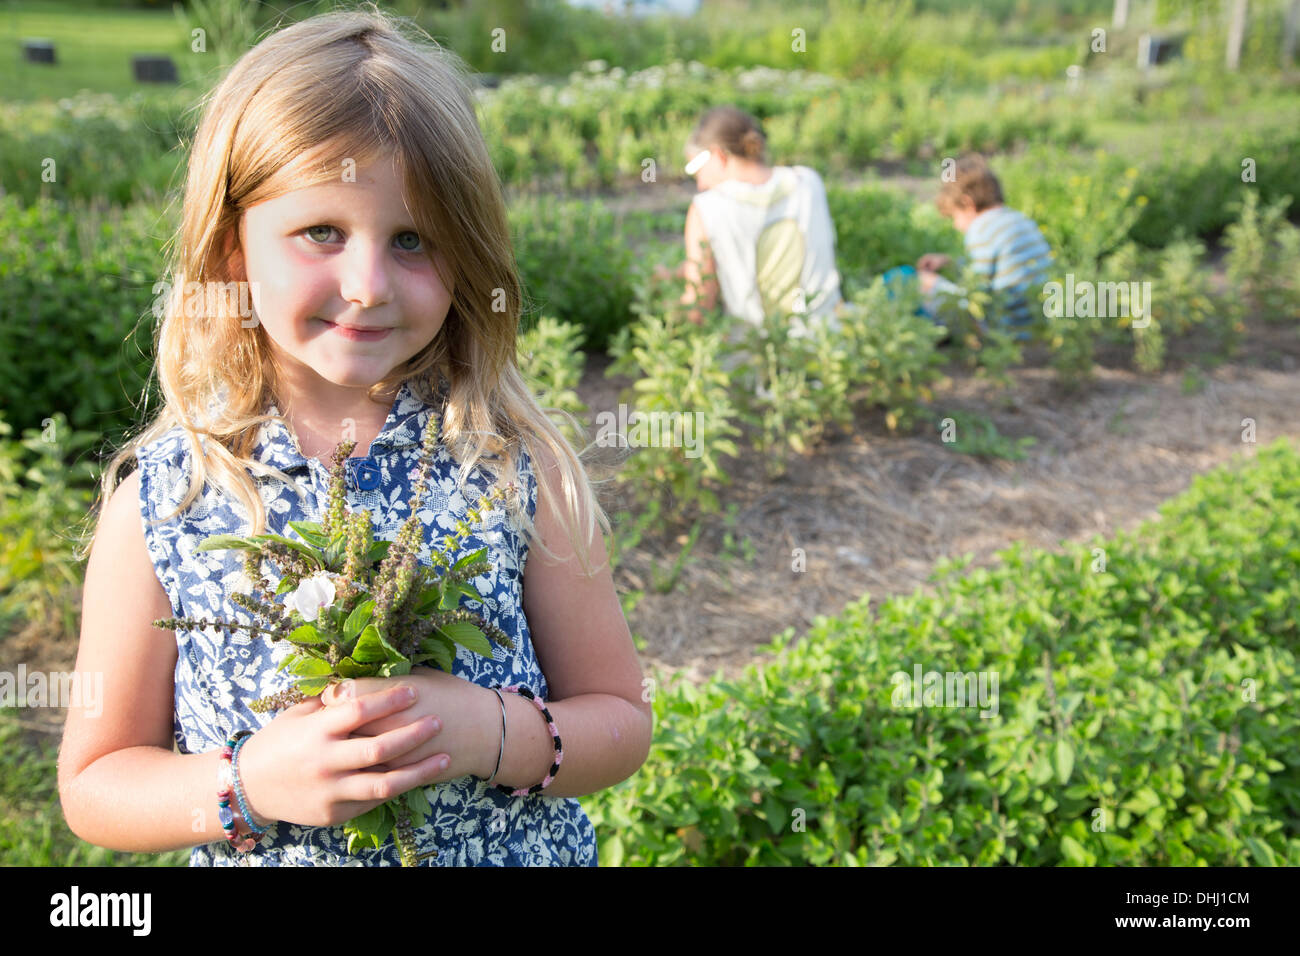 Portrait of girl holding bunch of foliage on herb farm - Stock Image